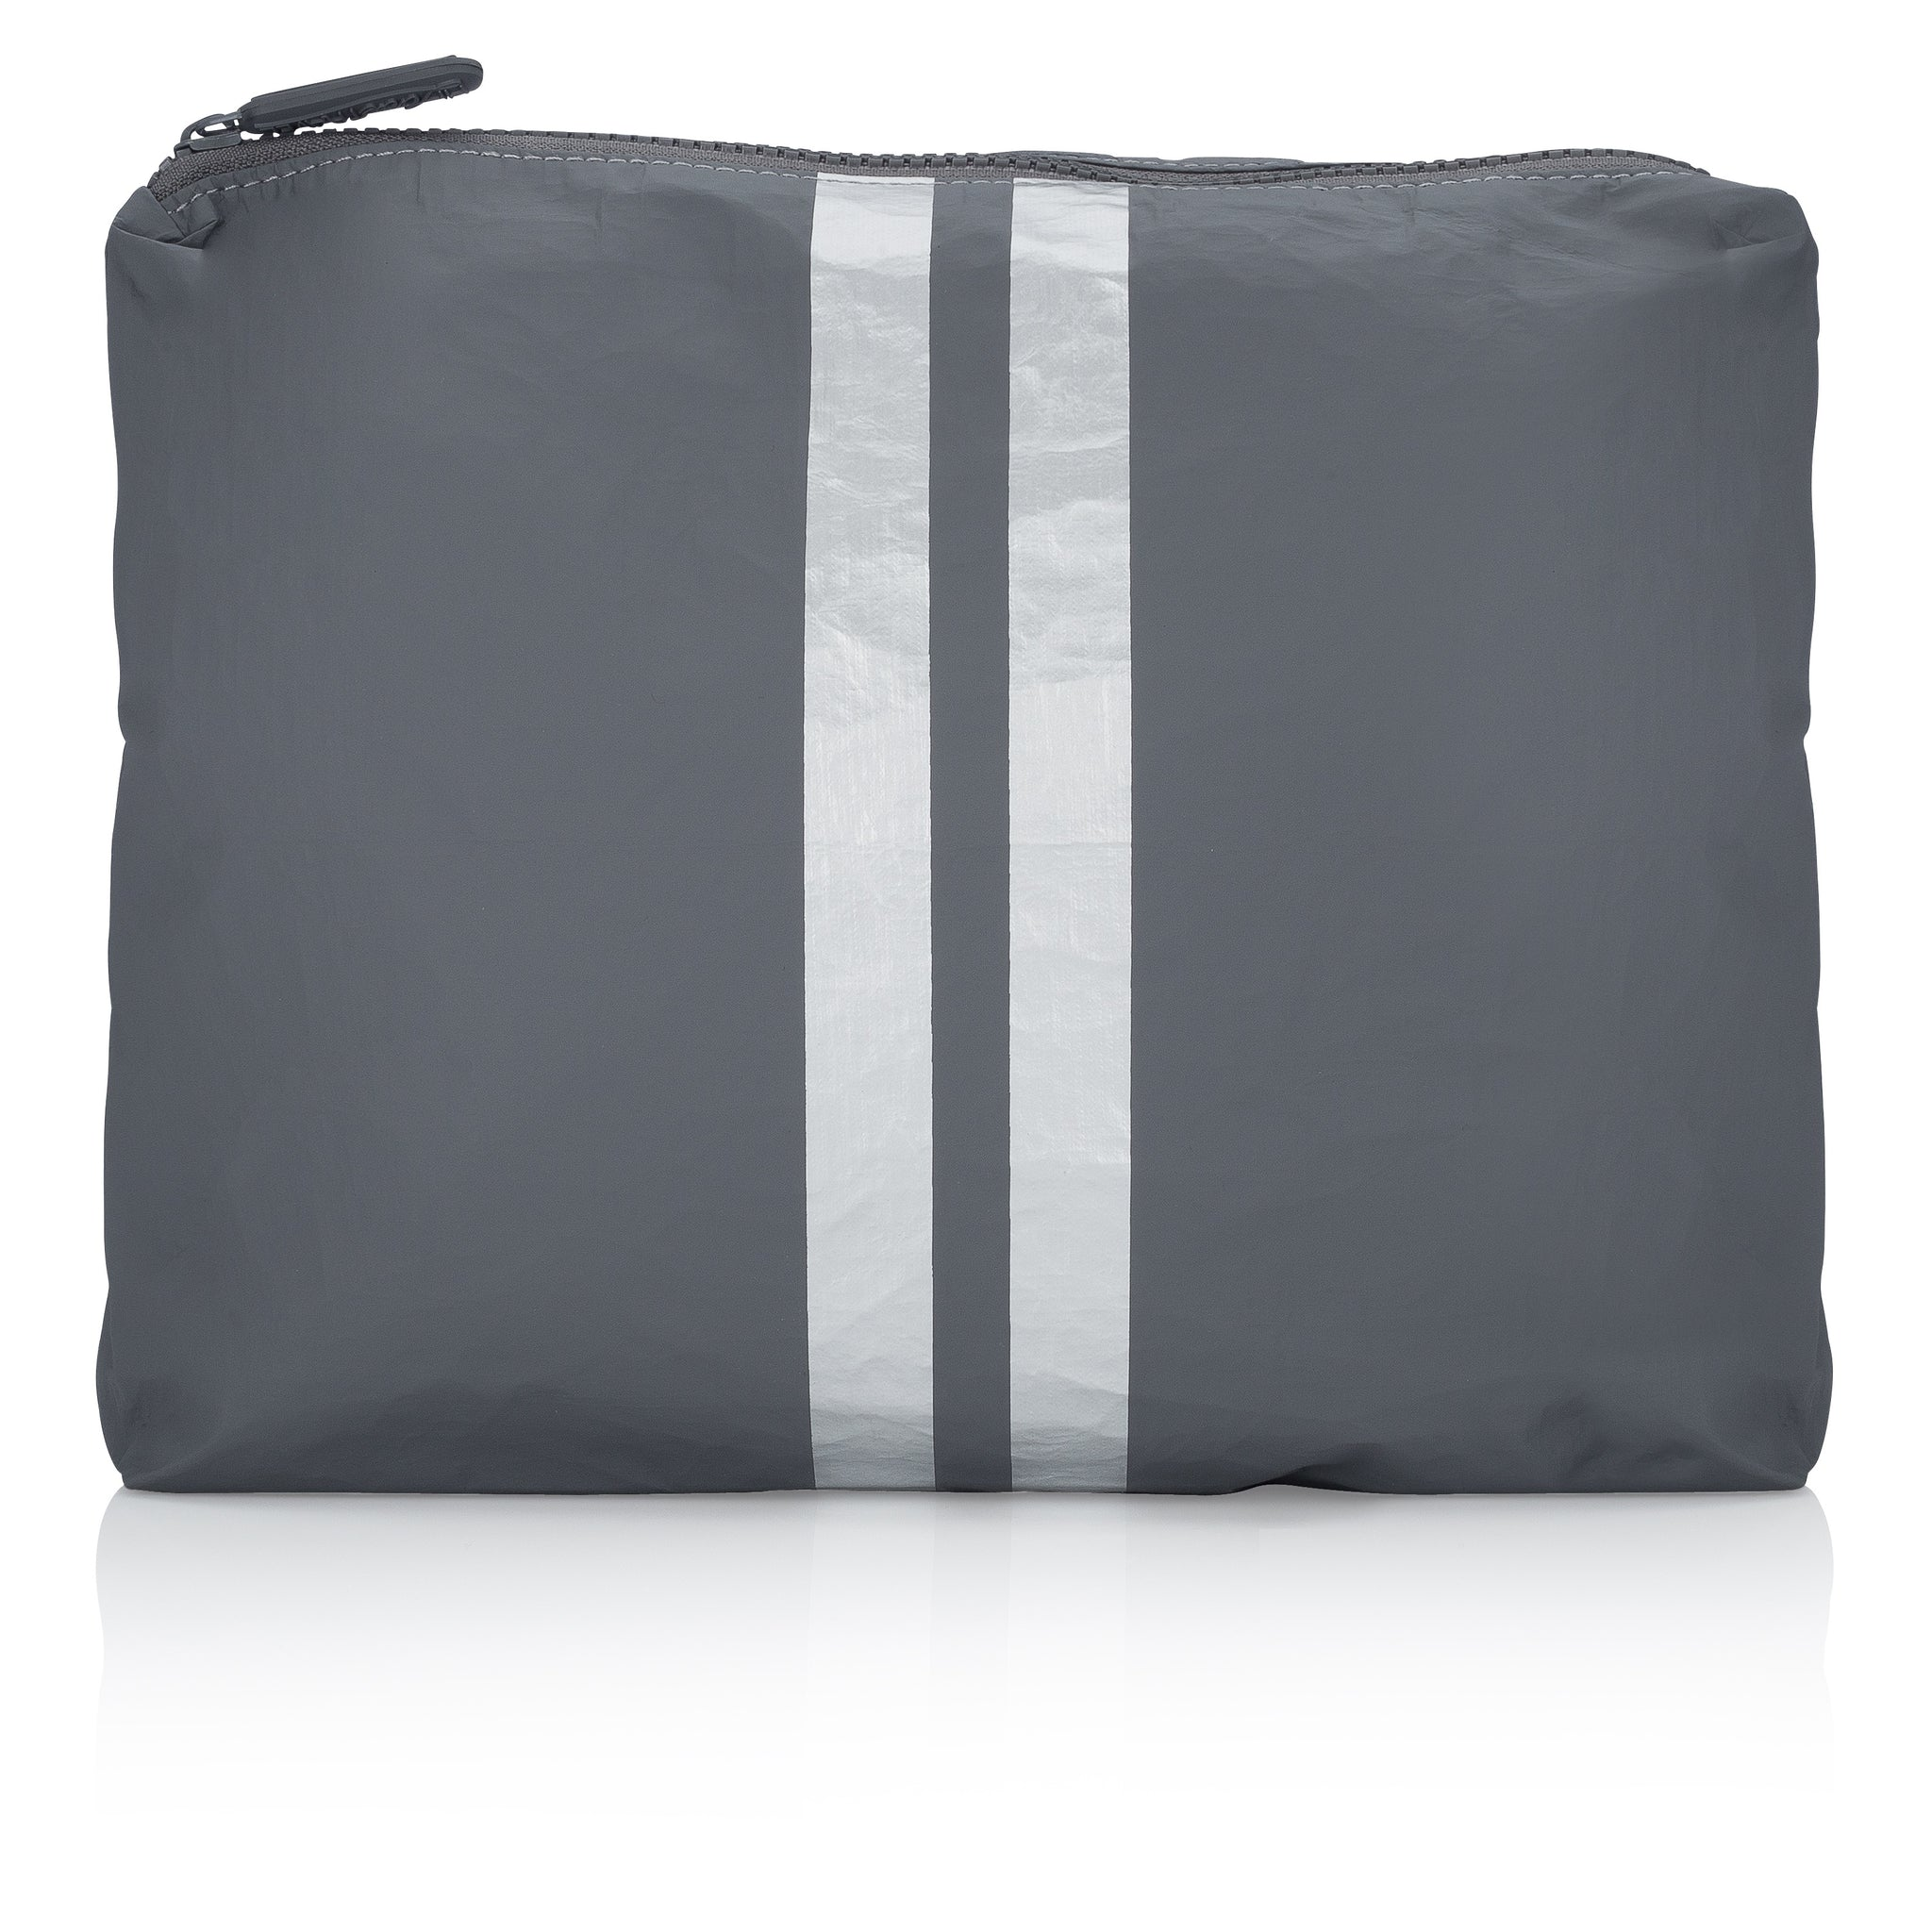 Medium Pack - Cool Gray HLT Collection with Silver Lines